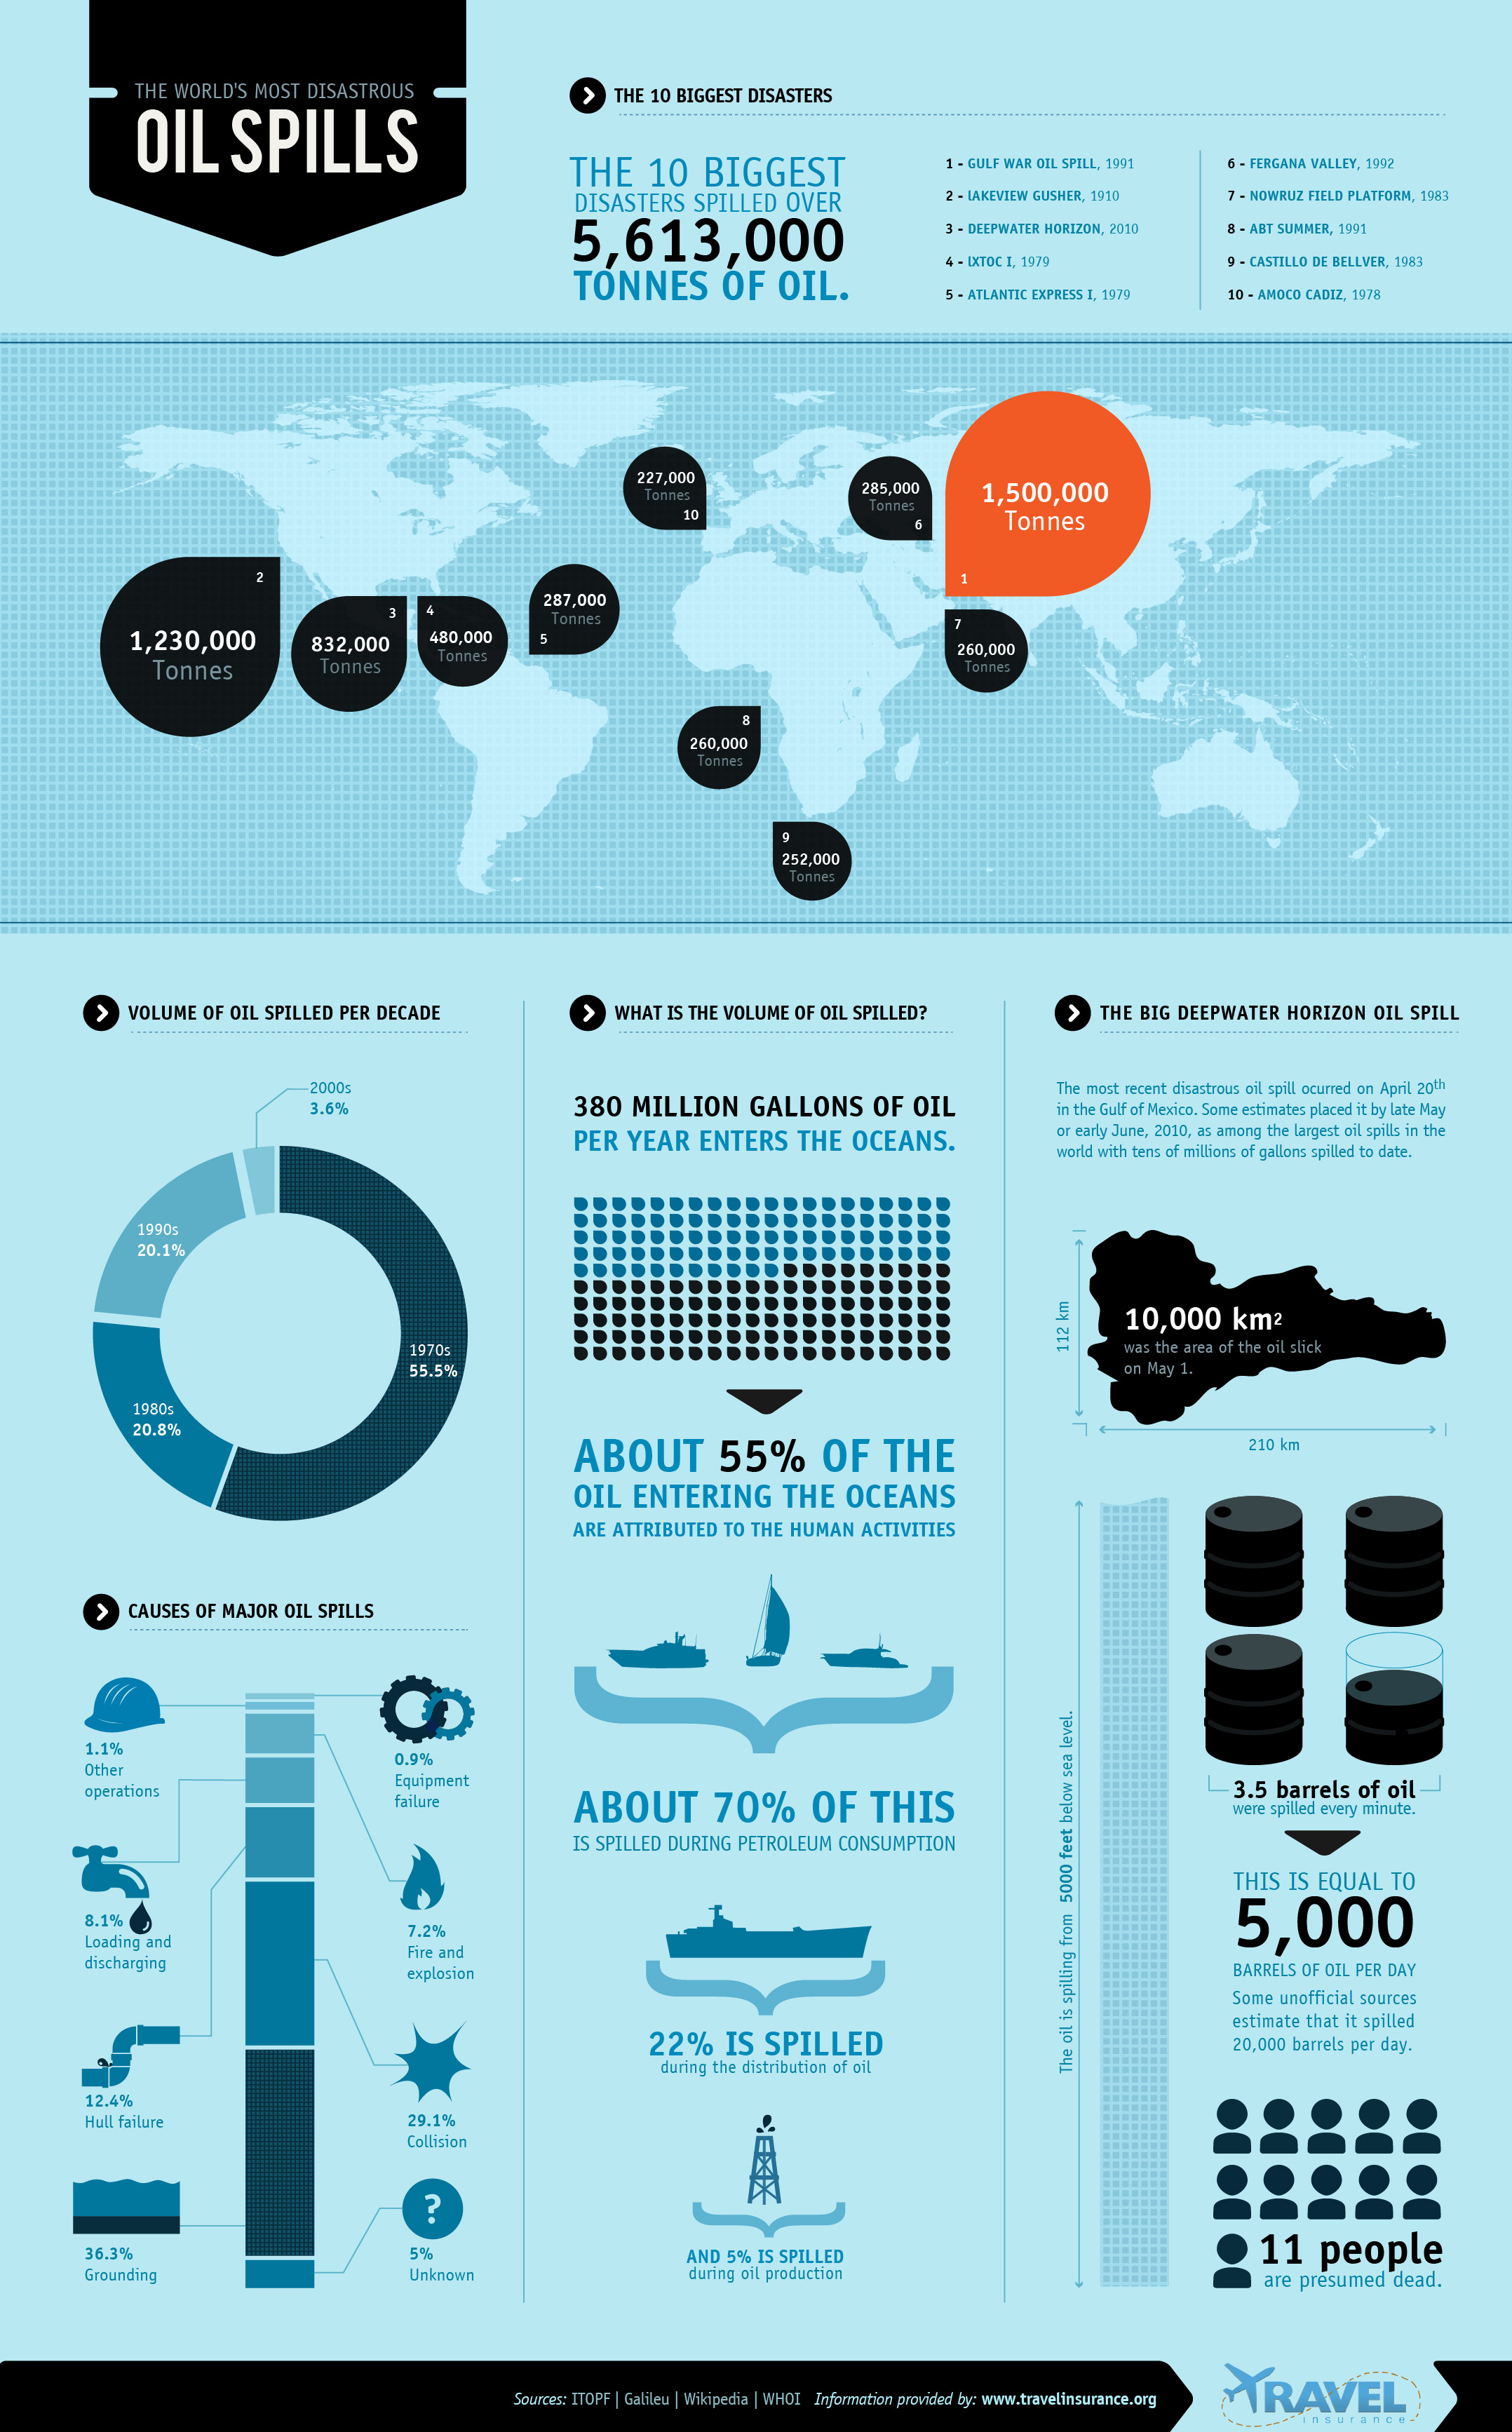 World's Most Disastrous Oil Spills Infographic